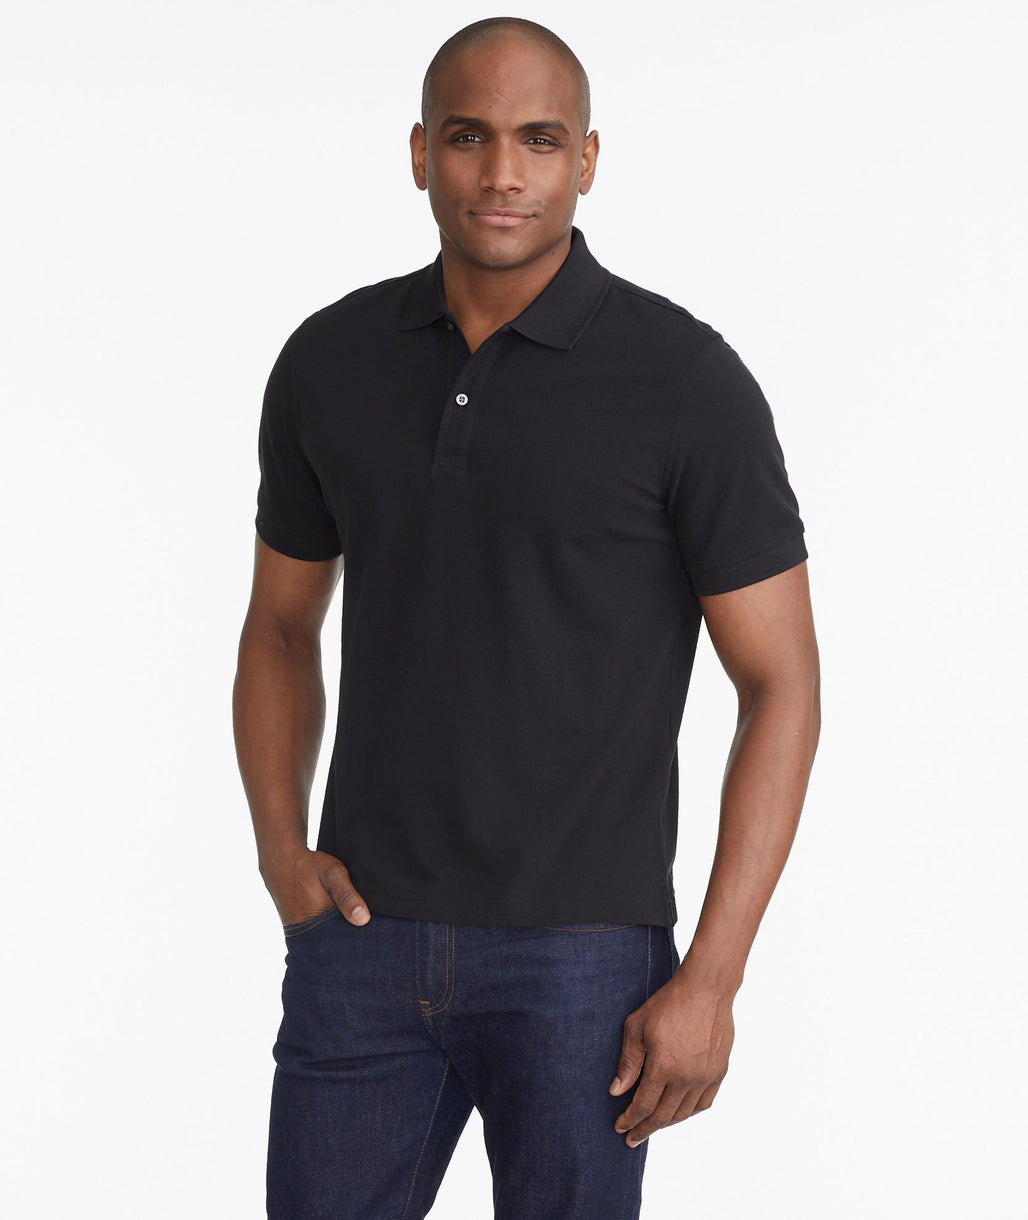 Model wearing a Black The Classic Pique Polo